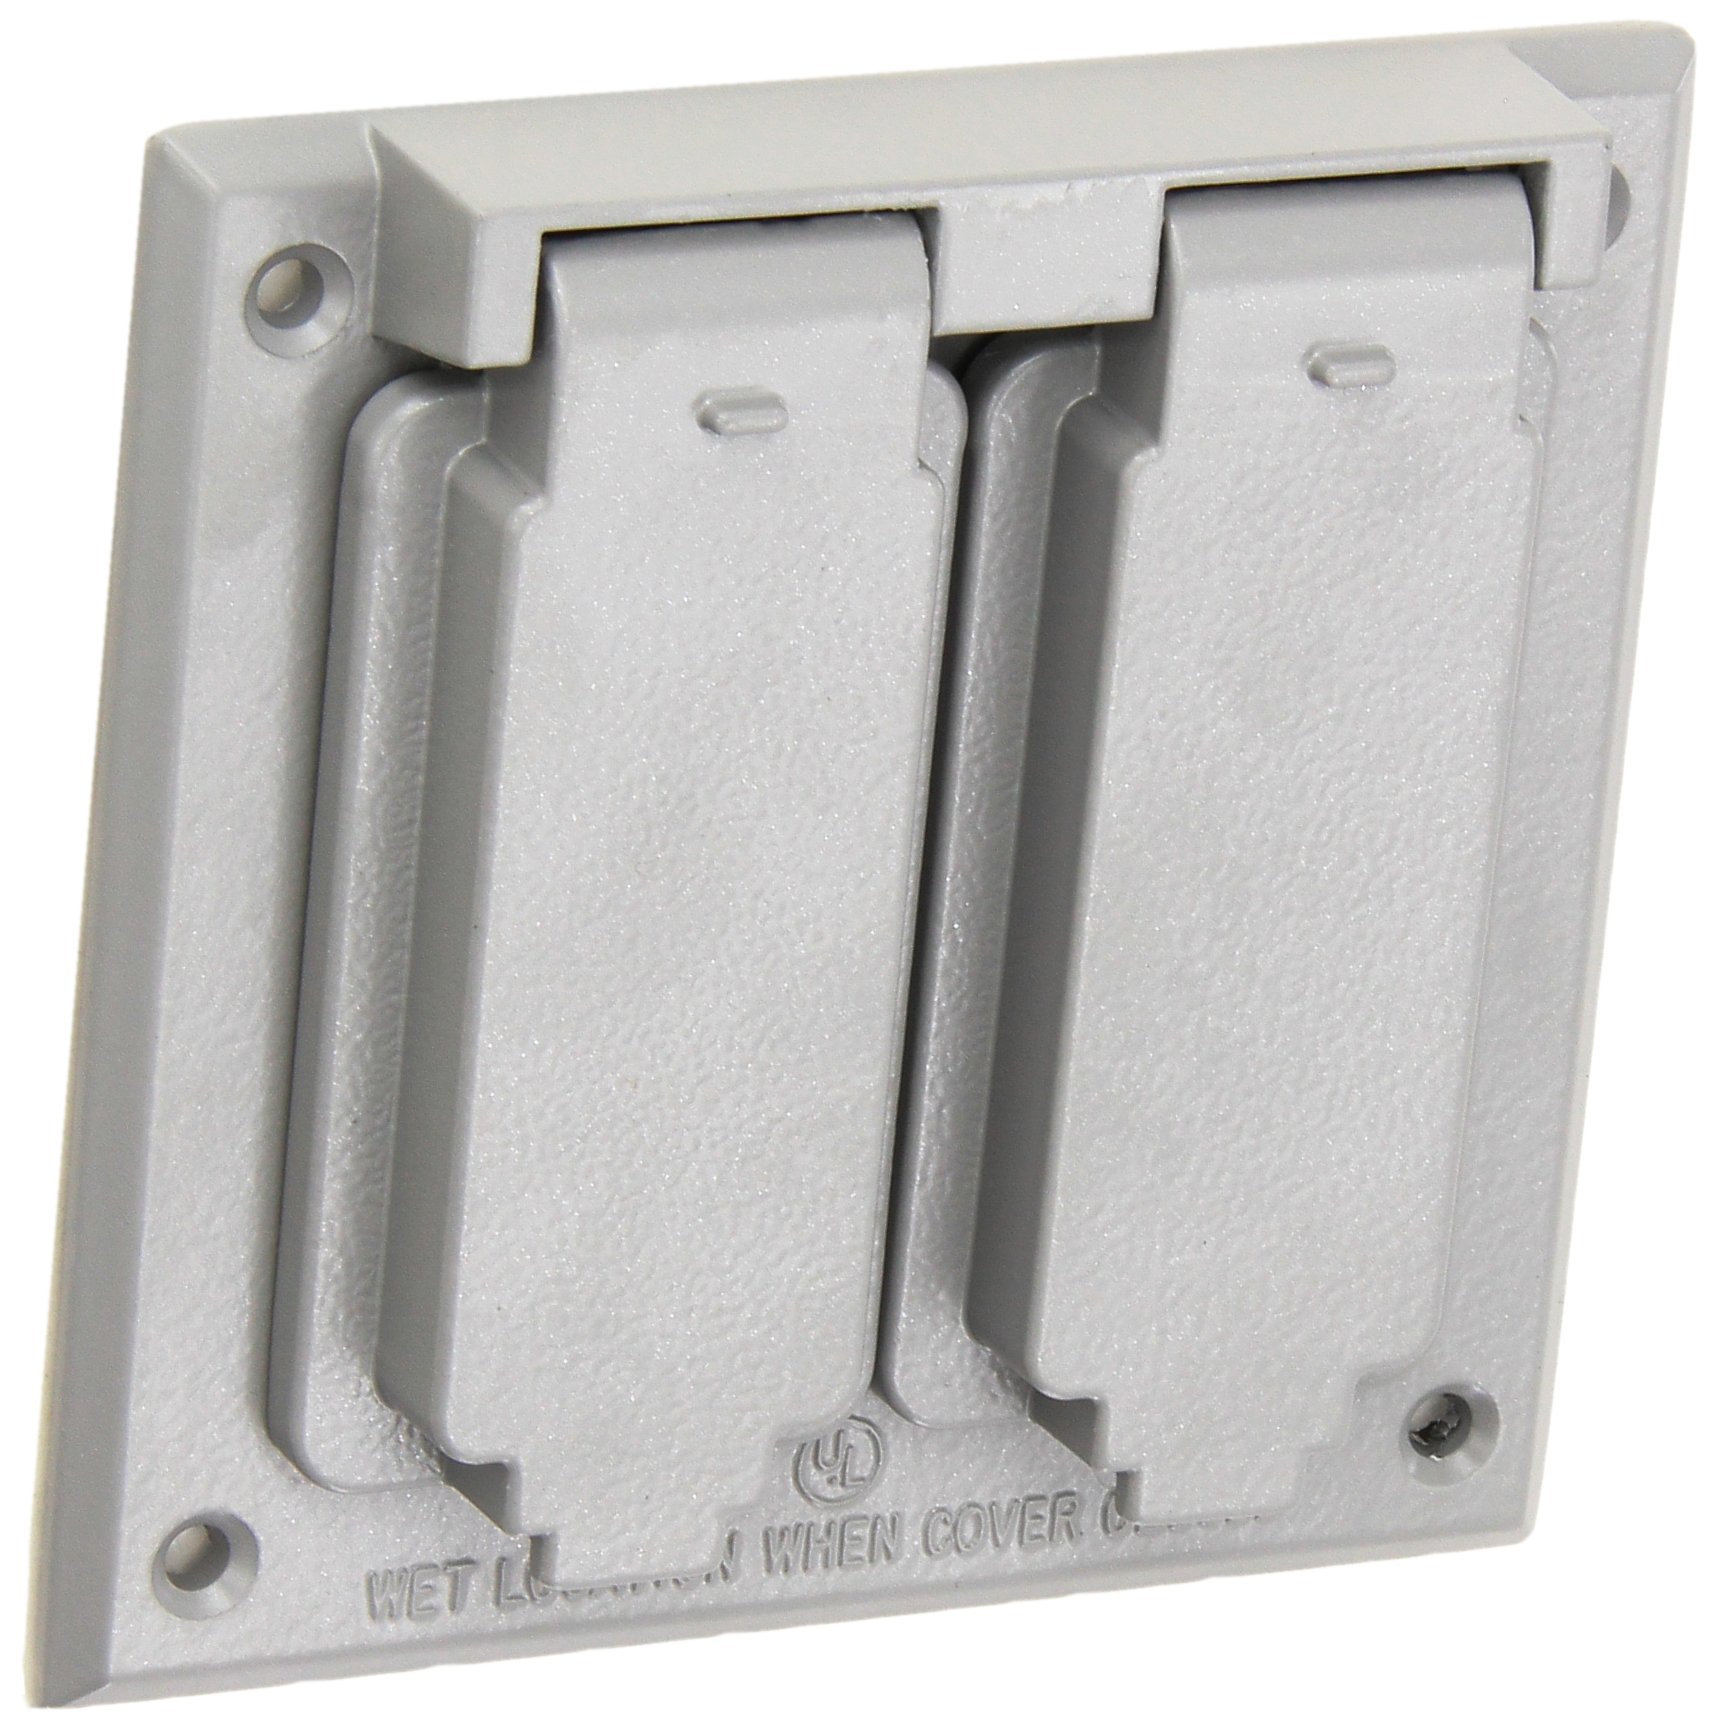 Morris 37220 1 GFCI and 1 Duplex Receptacle 2-Gangs Weatherproof Cover